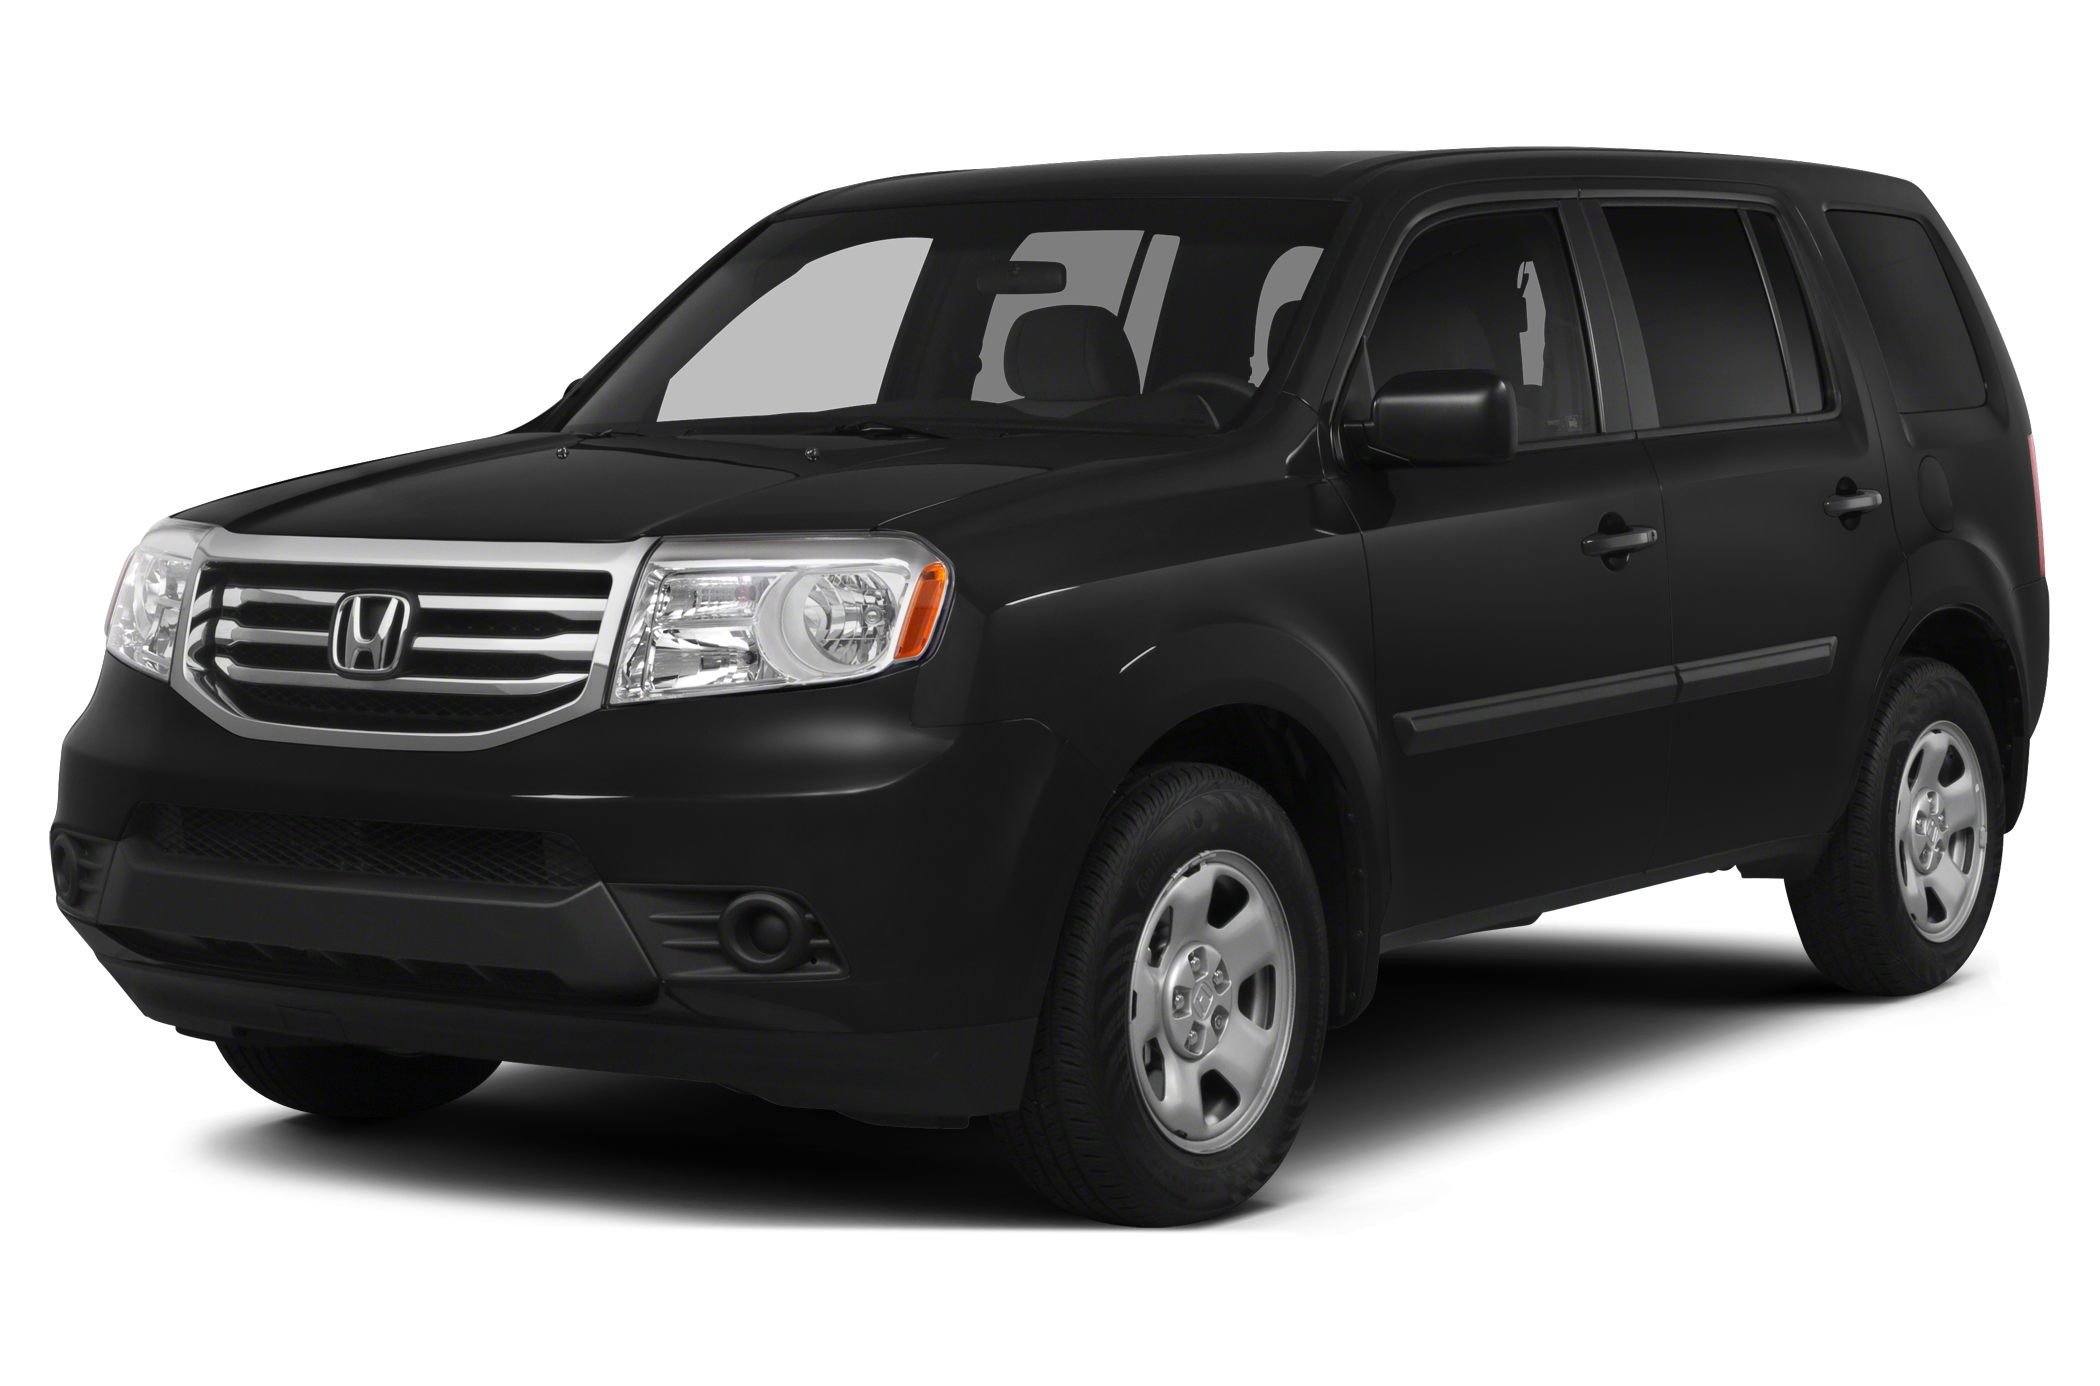 2013 Honda Pilot LX Value Value 3 Year 100k miles limited Power Train Warranty with road side Ass